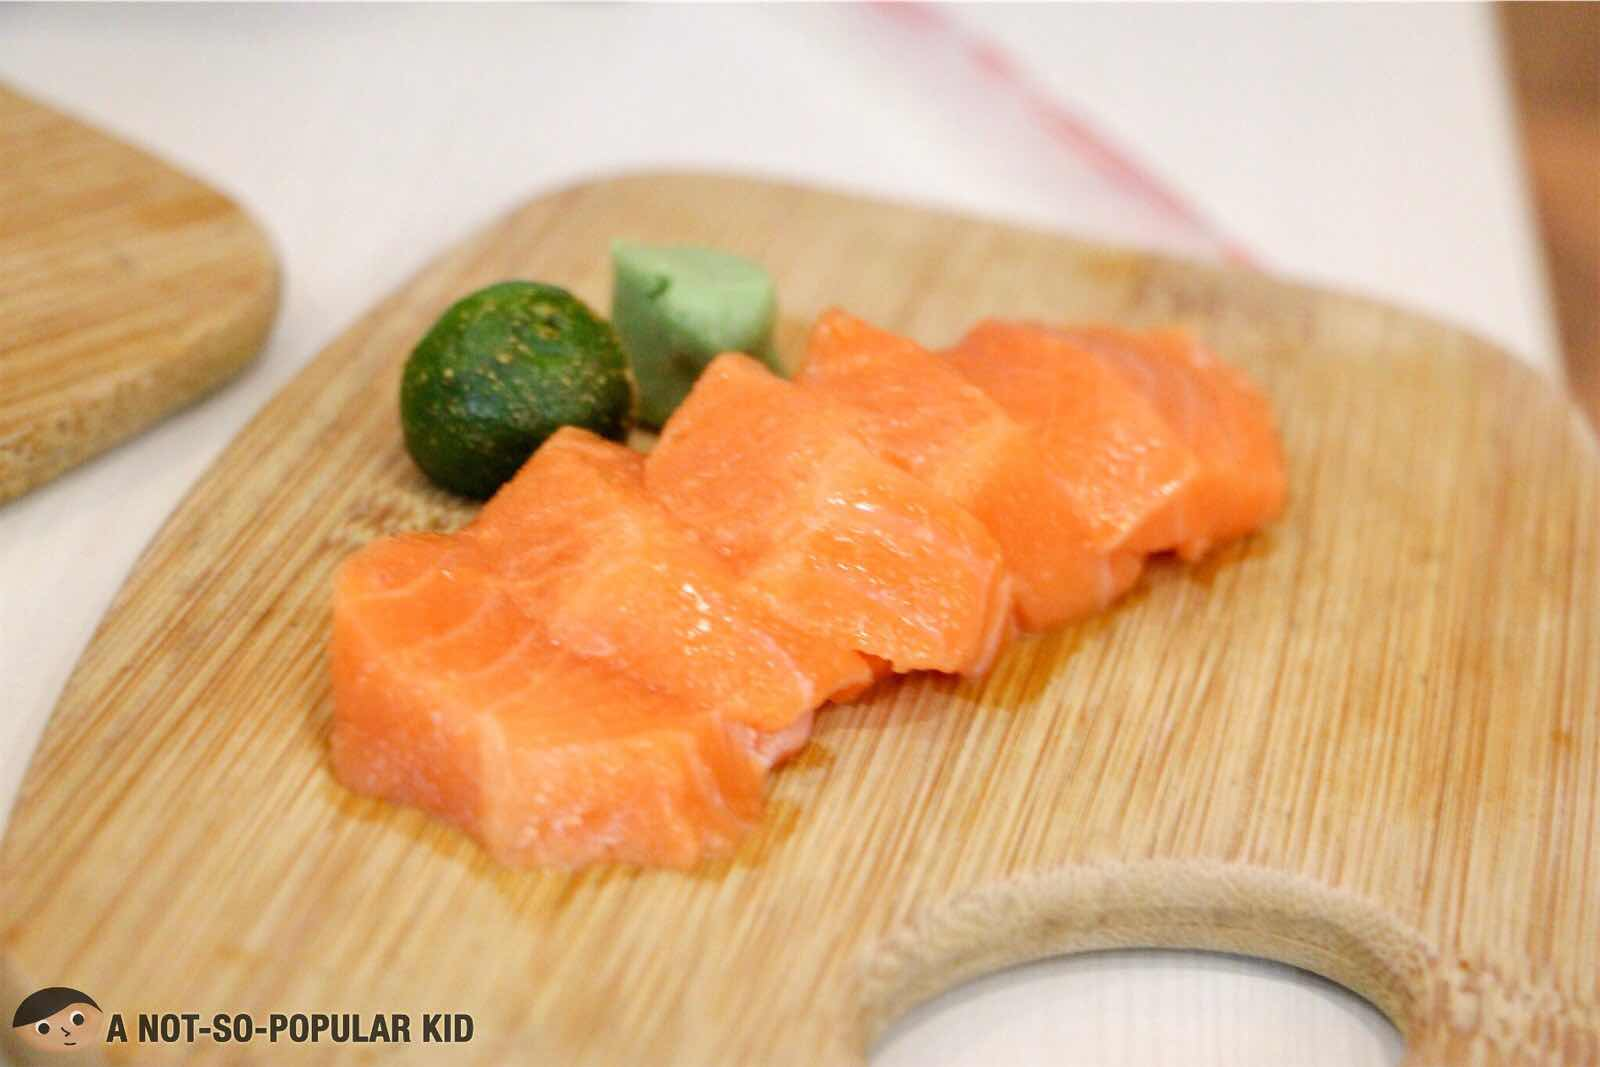 Affordable Salmon Sashimi of Asian Bites